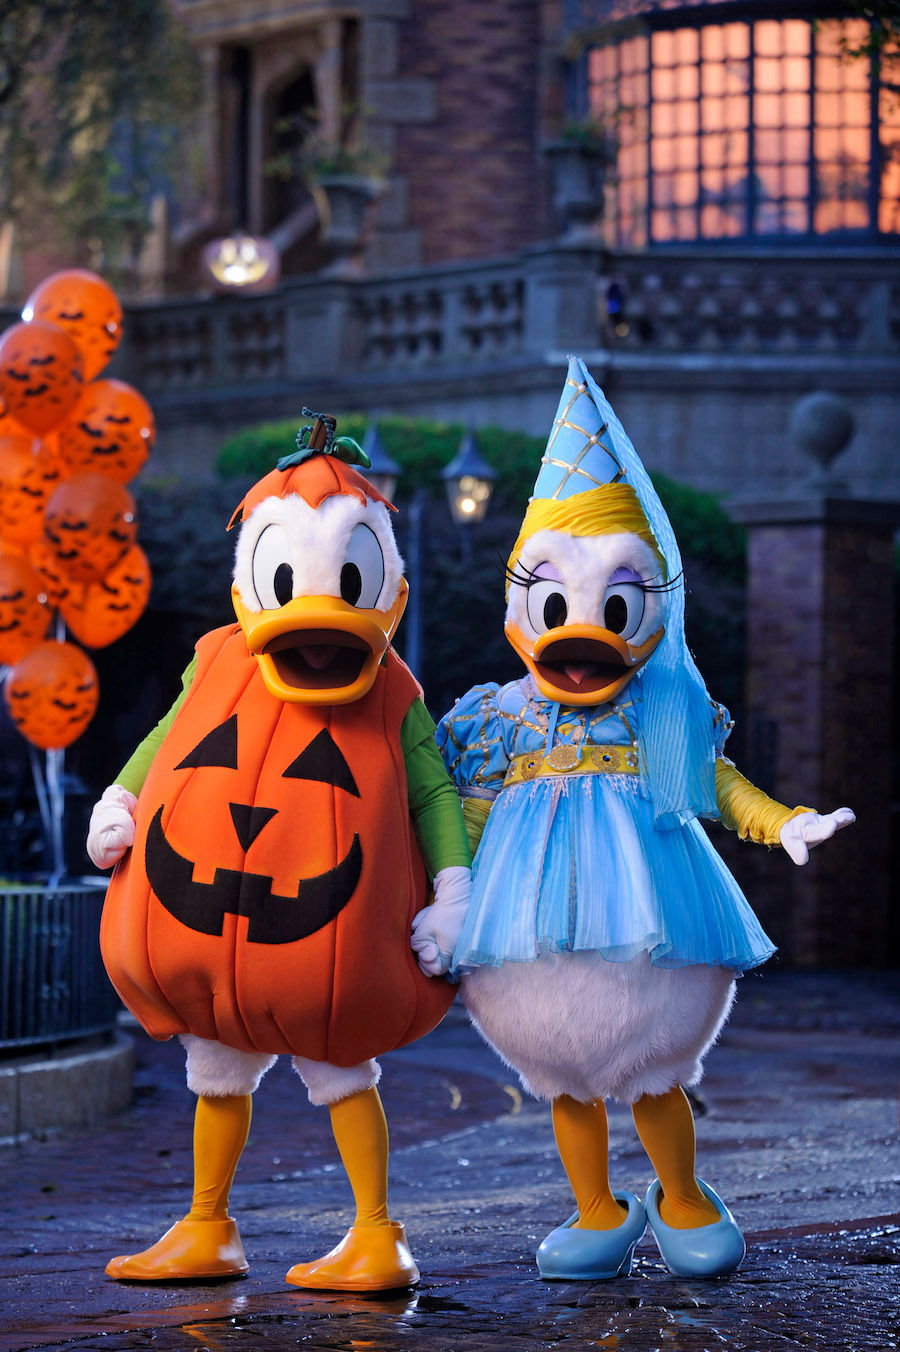 list of characters & where to find them at mickey's not-so-scary